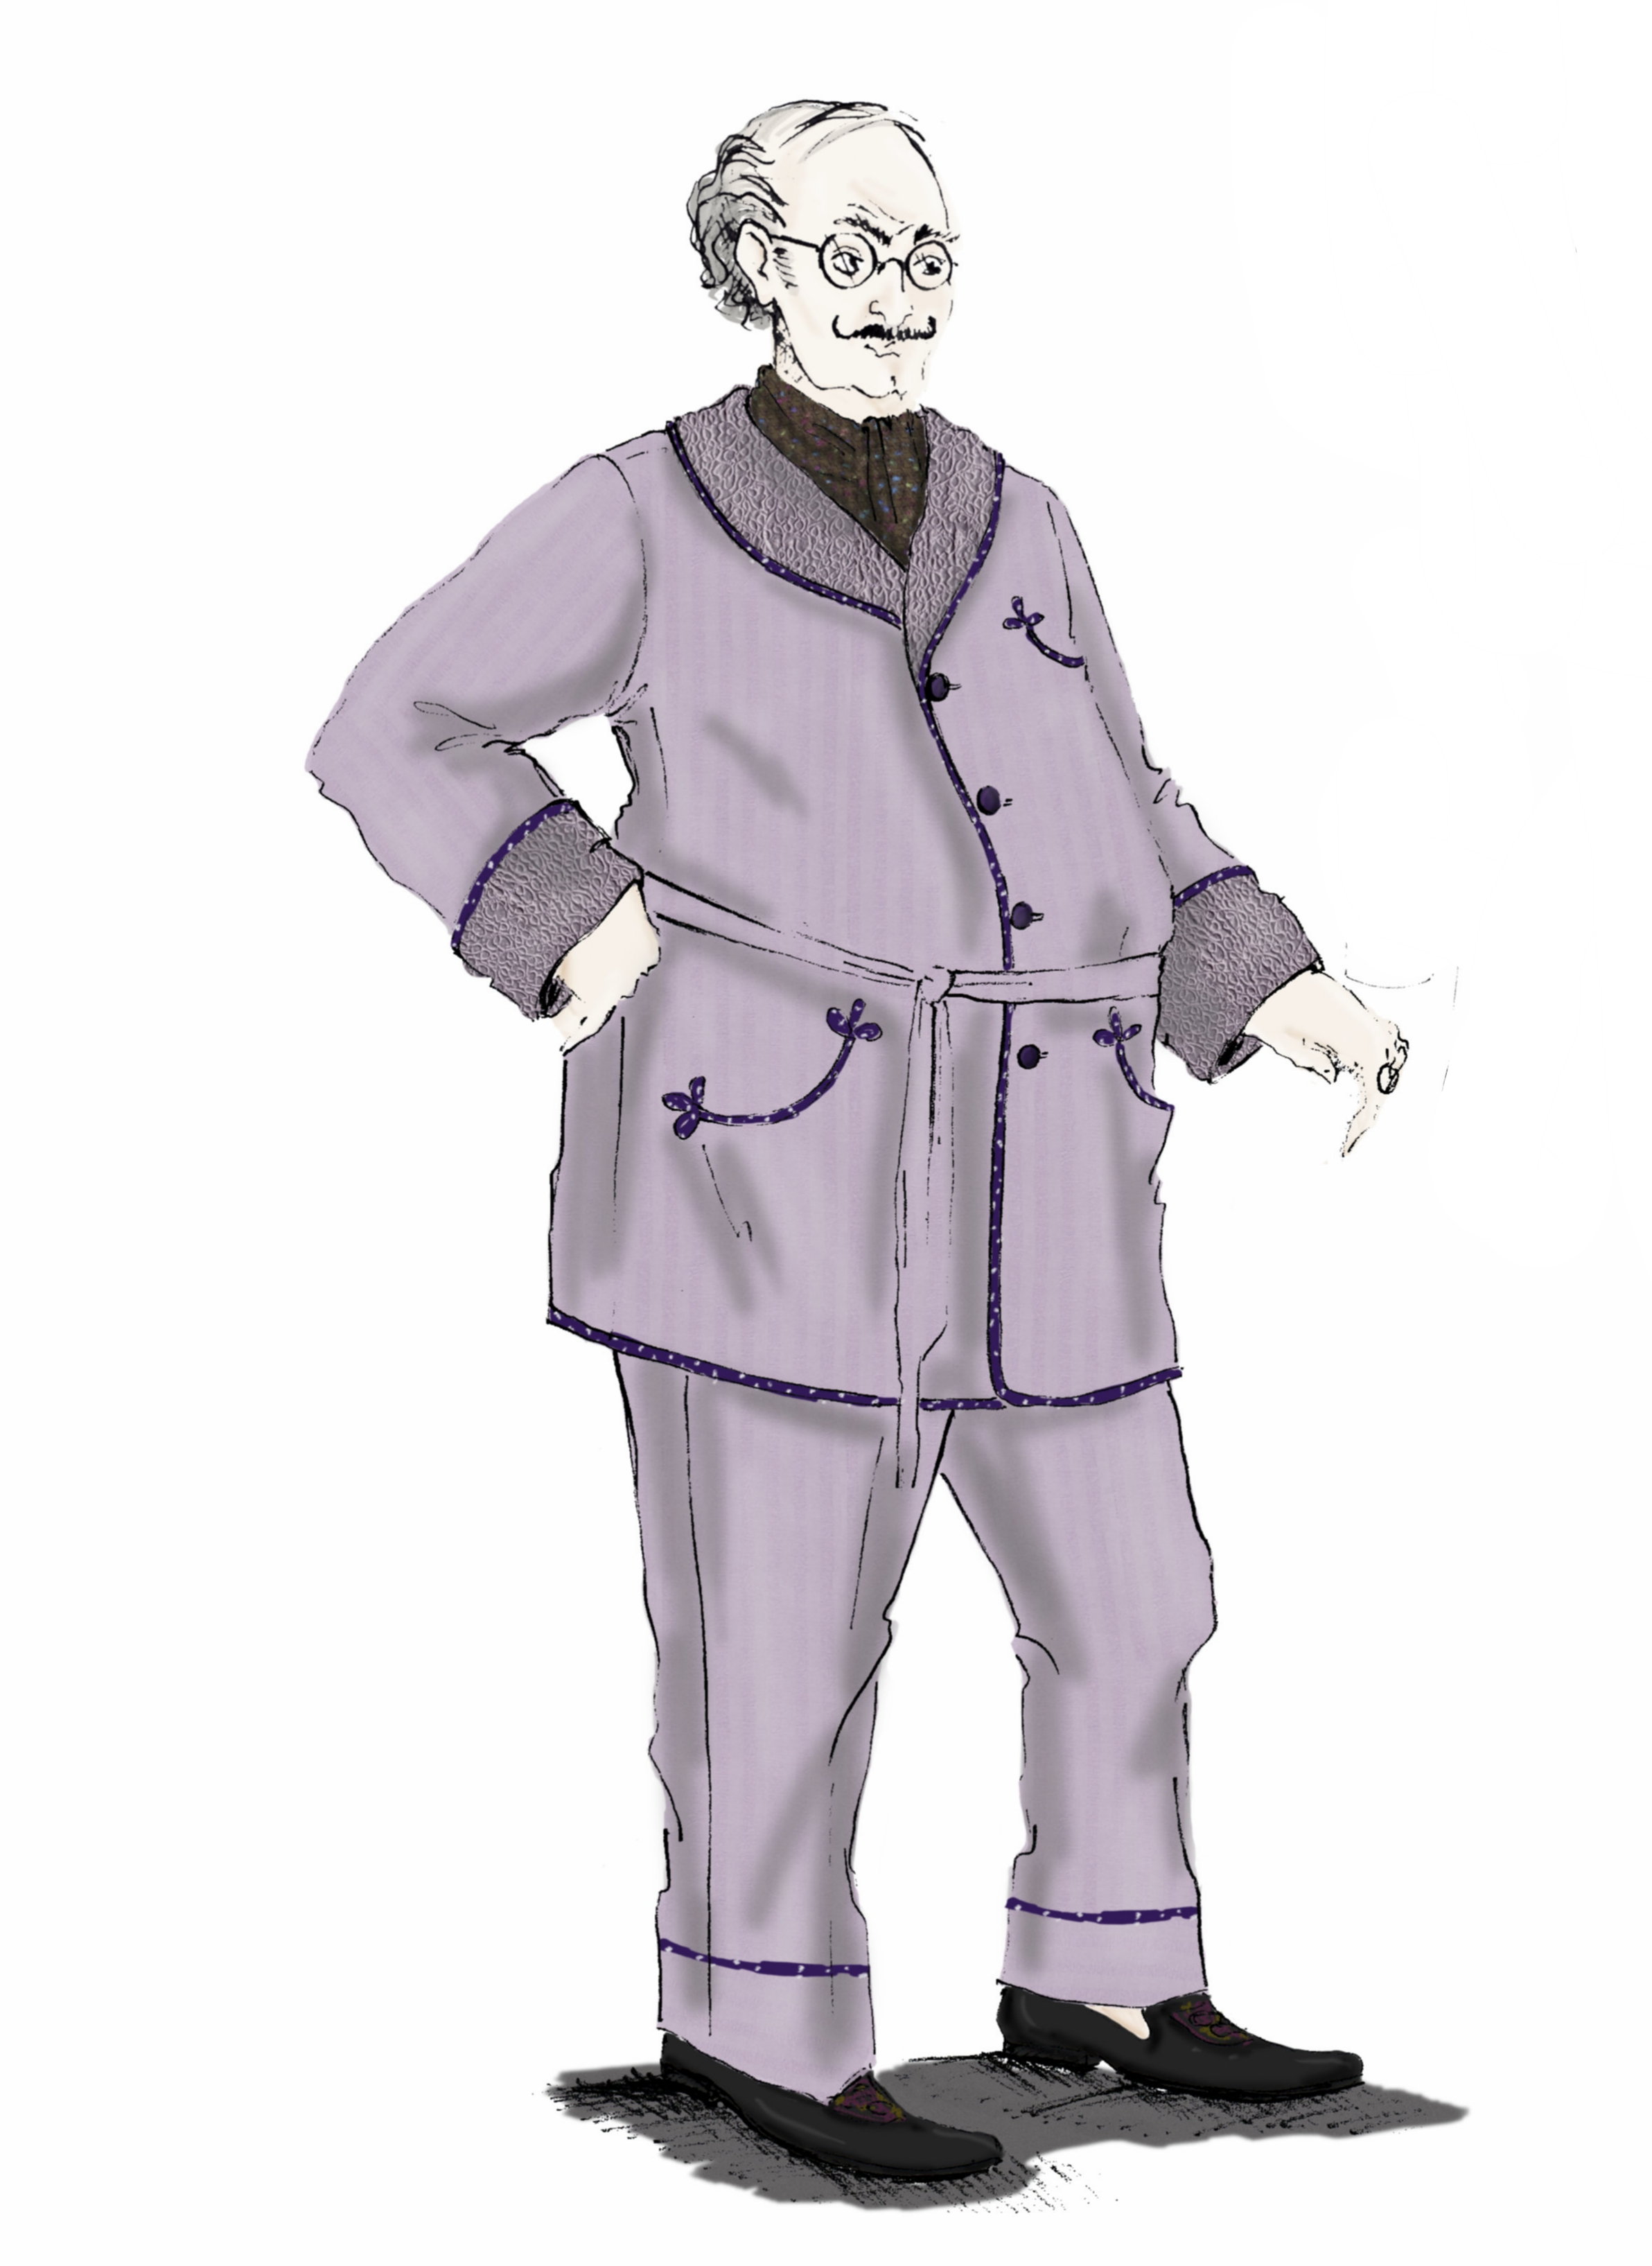 An illustration of Slughorn in his pyjamas.